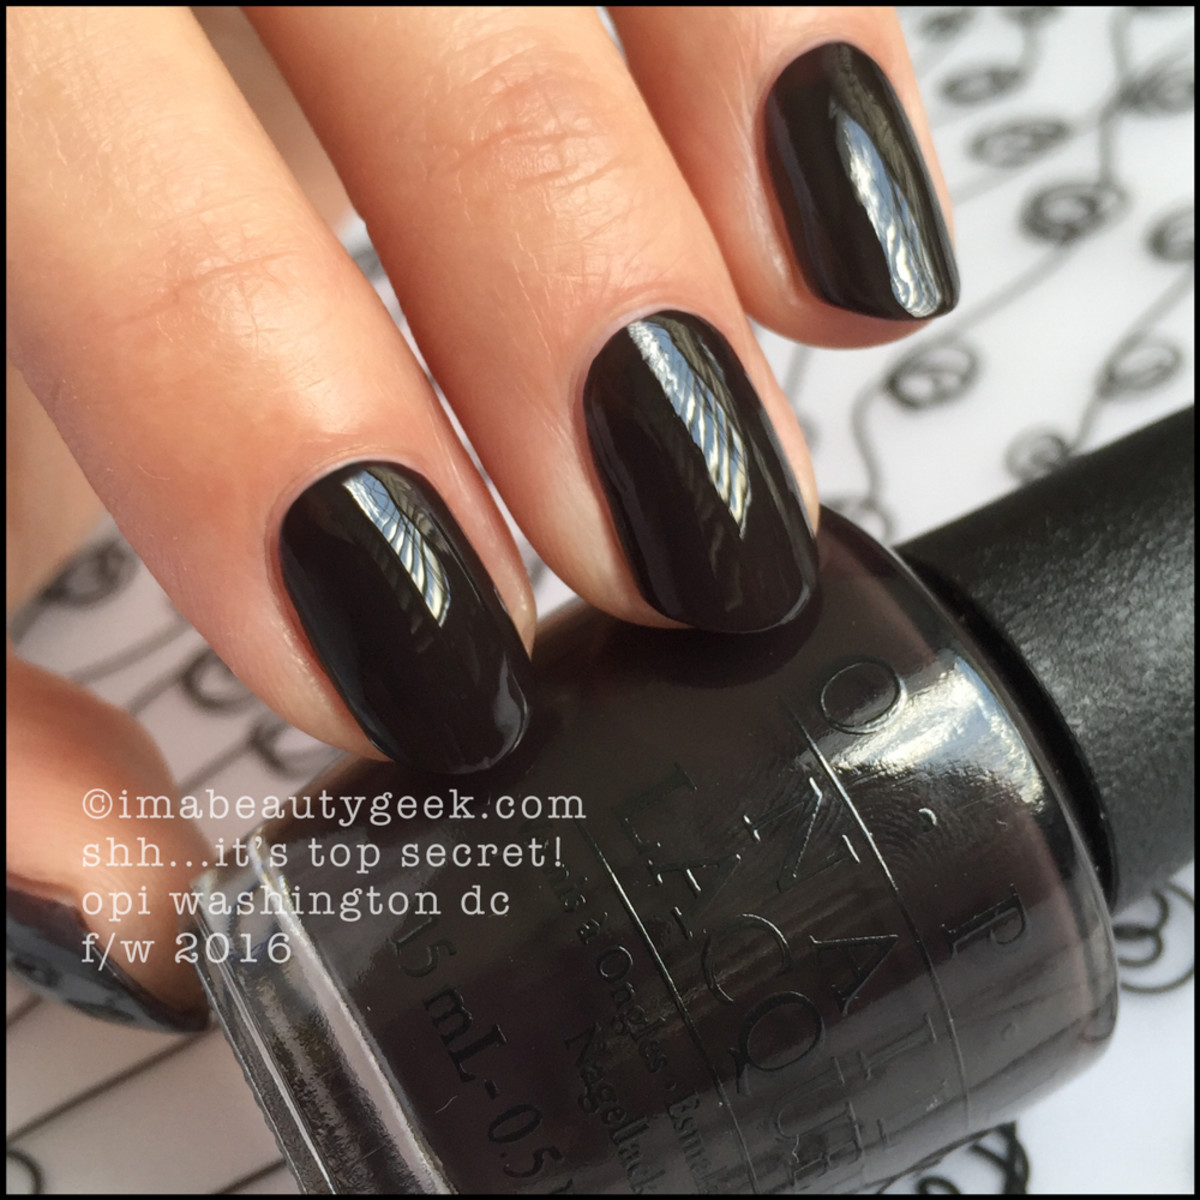 OPI Shh Its Top Secret_OPI Washington DC Collection 2016 Review Swatches Comparisons